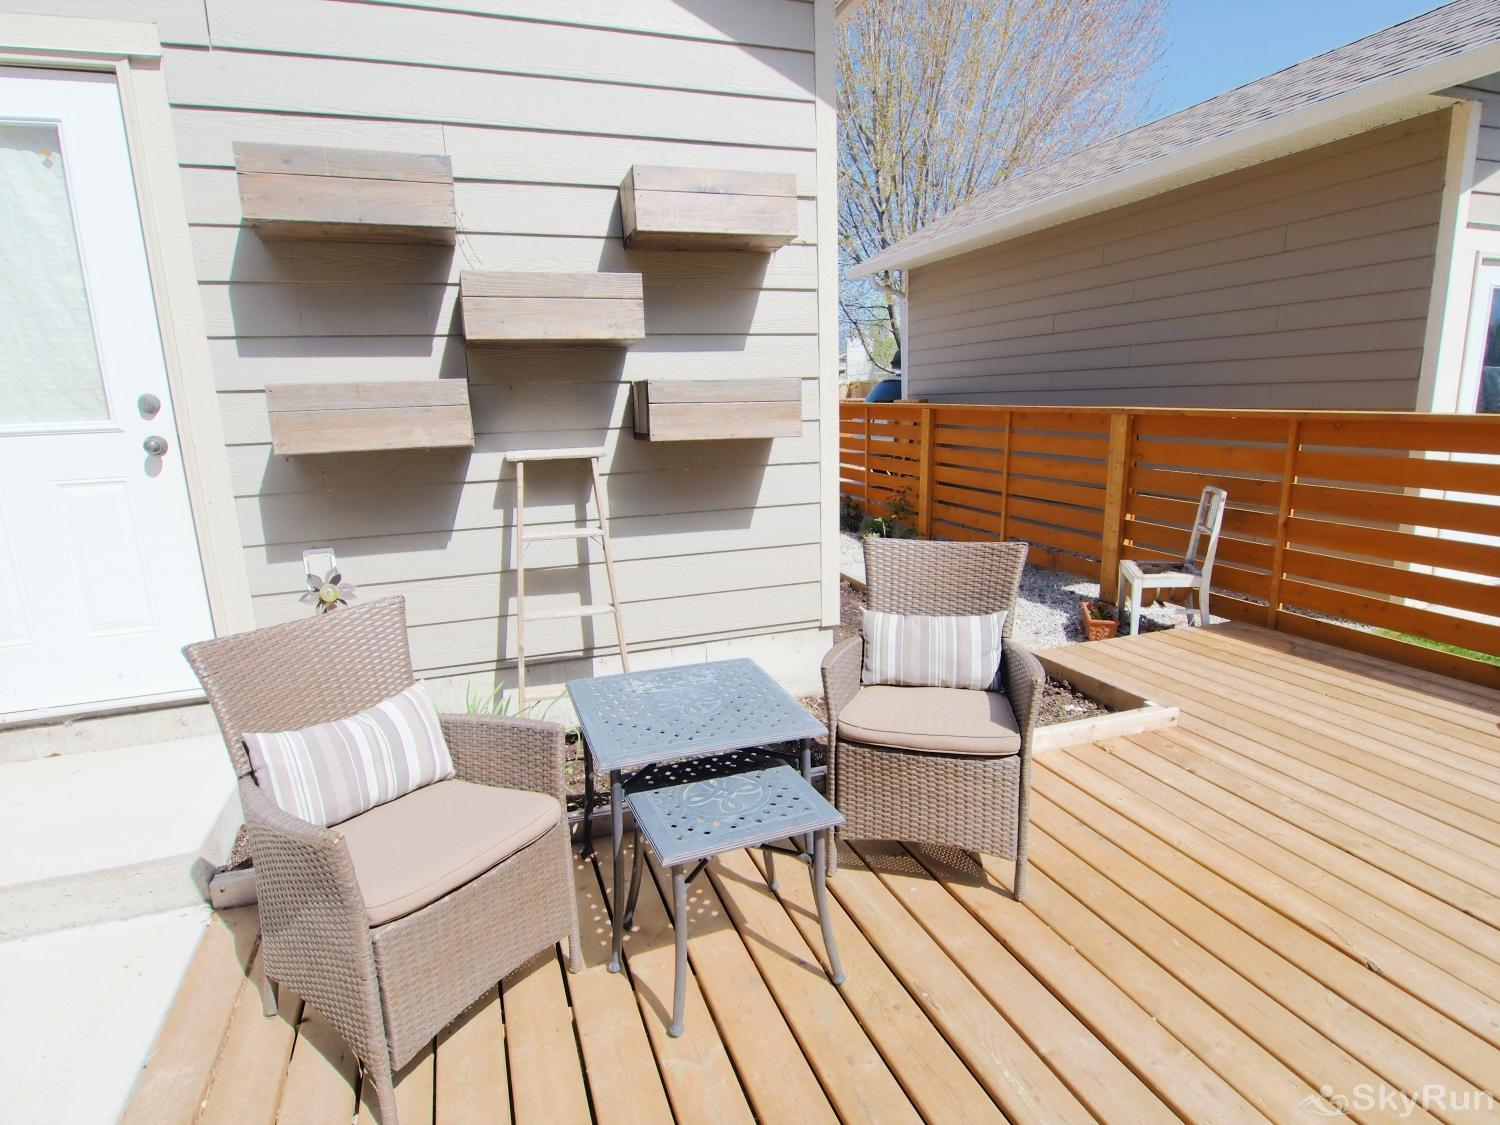 Old Summerland 1 bedroom suite Lots of room to socialize in this great outdoor space